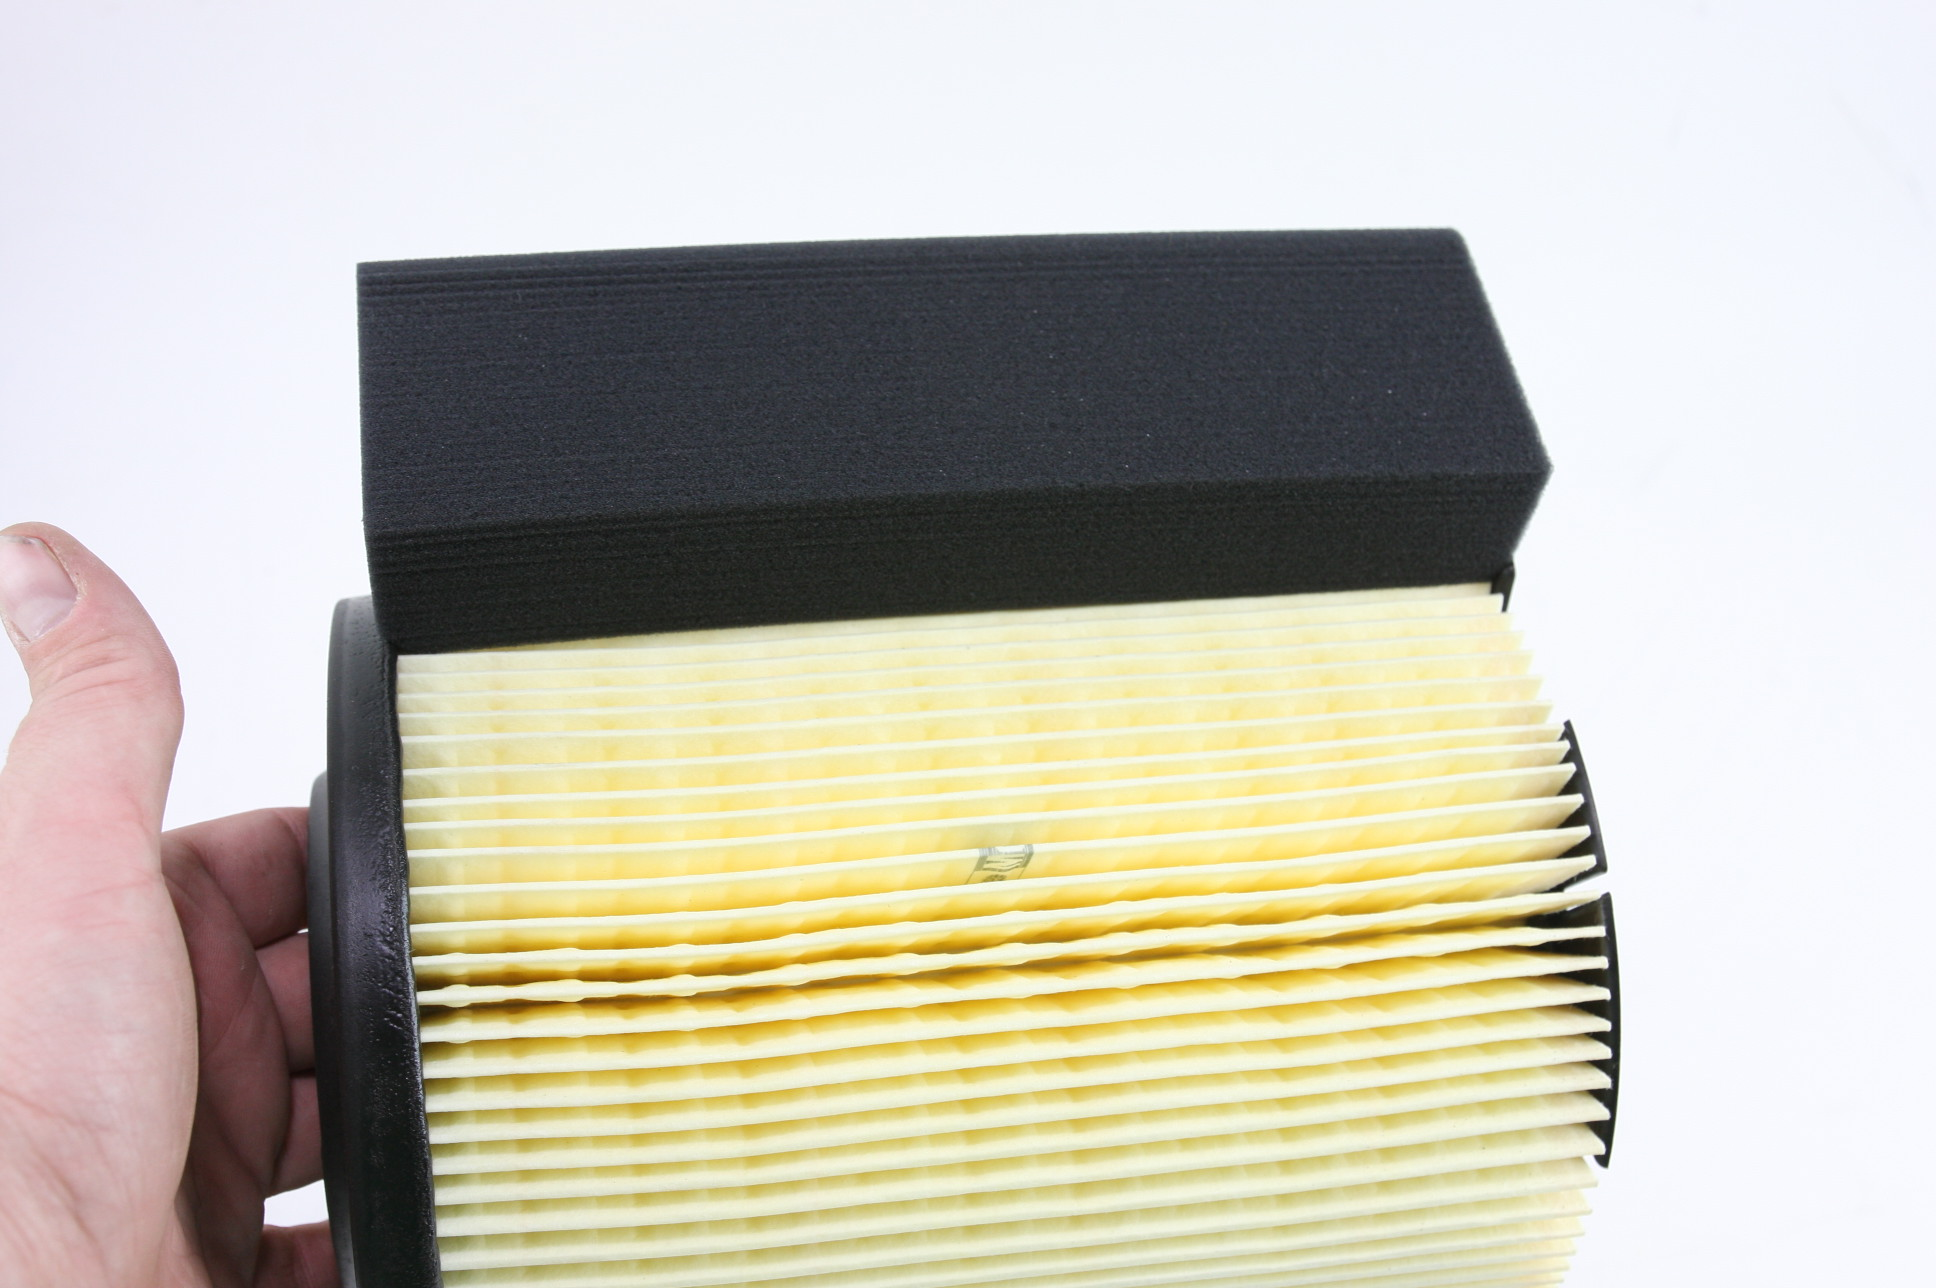 * New OEM 2 Pack Motorcraft FA1927 Ford HC3Z9601A Powerstroke Diesel Air Filter - image 7